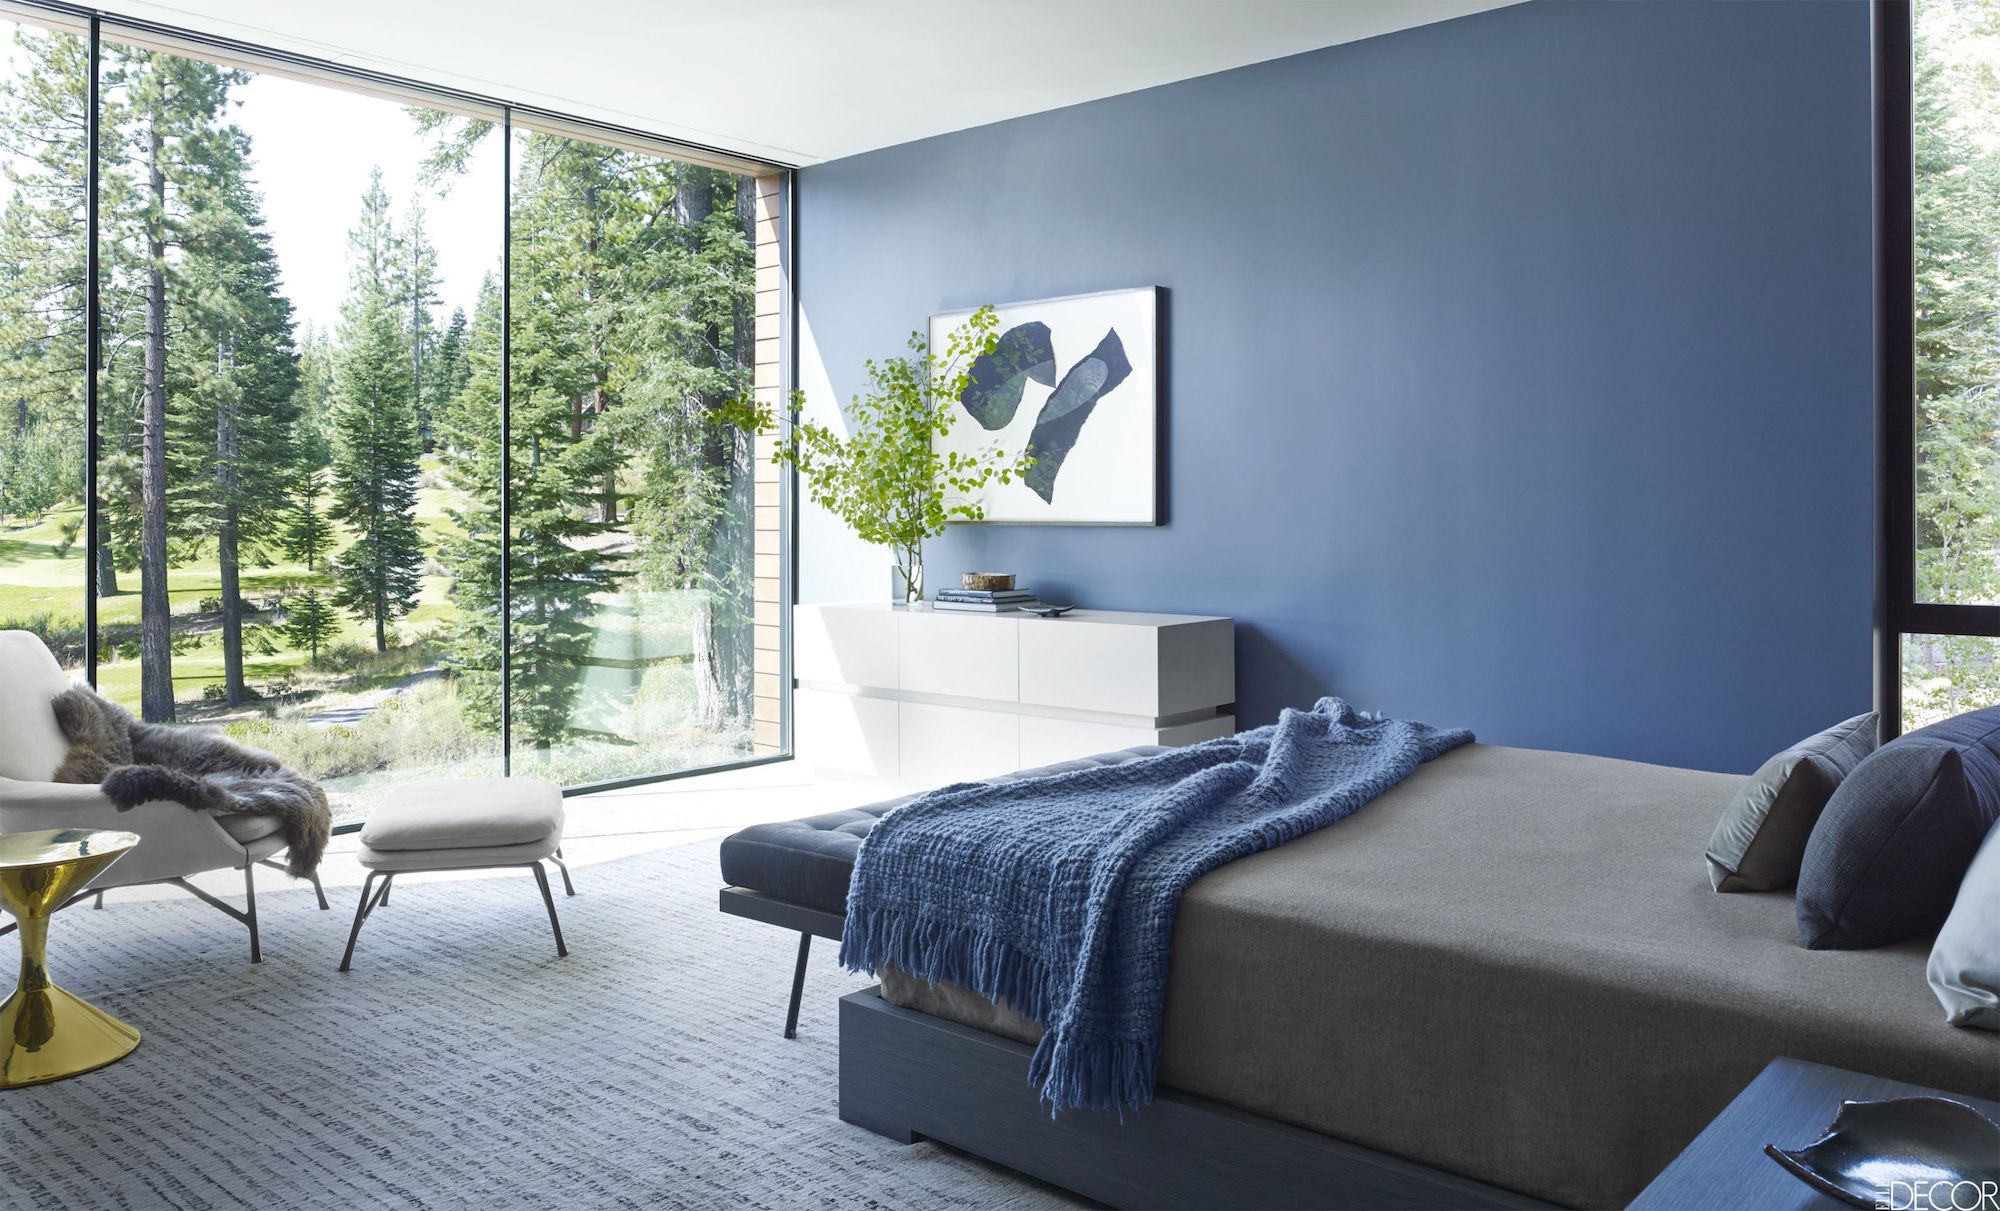 10 Stylish Green And Blue Room Ideas best blue bedrooms blue room ideas